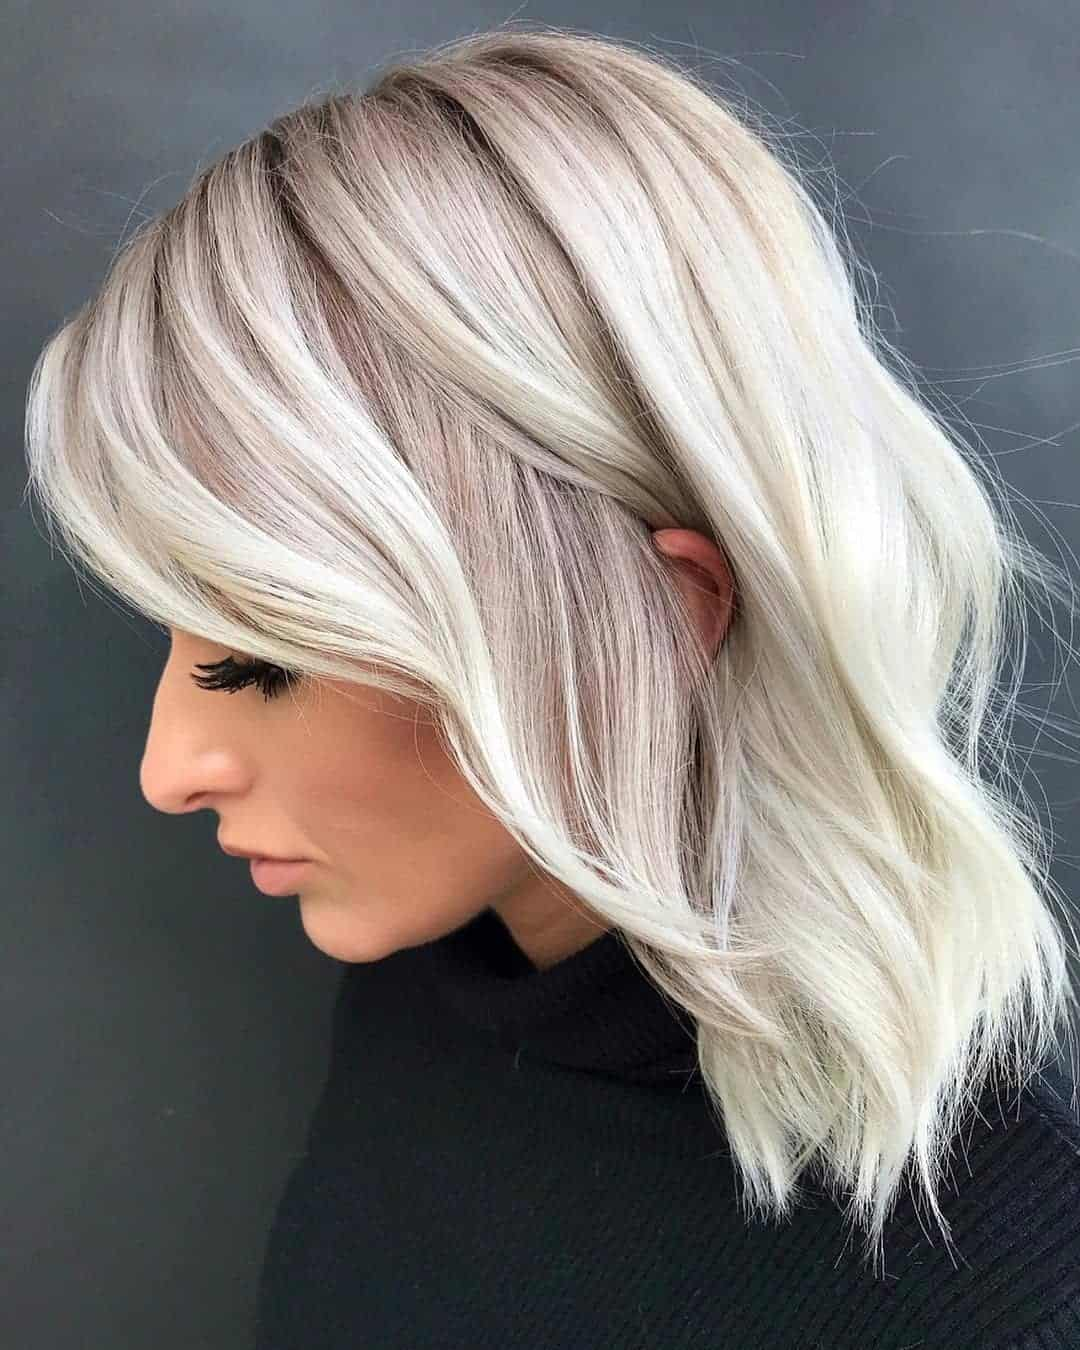 Hairstyles-for-women-2019-Best-hairstyles-in-2019